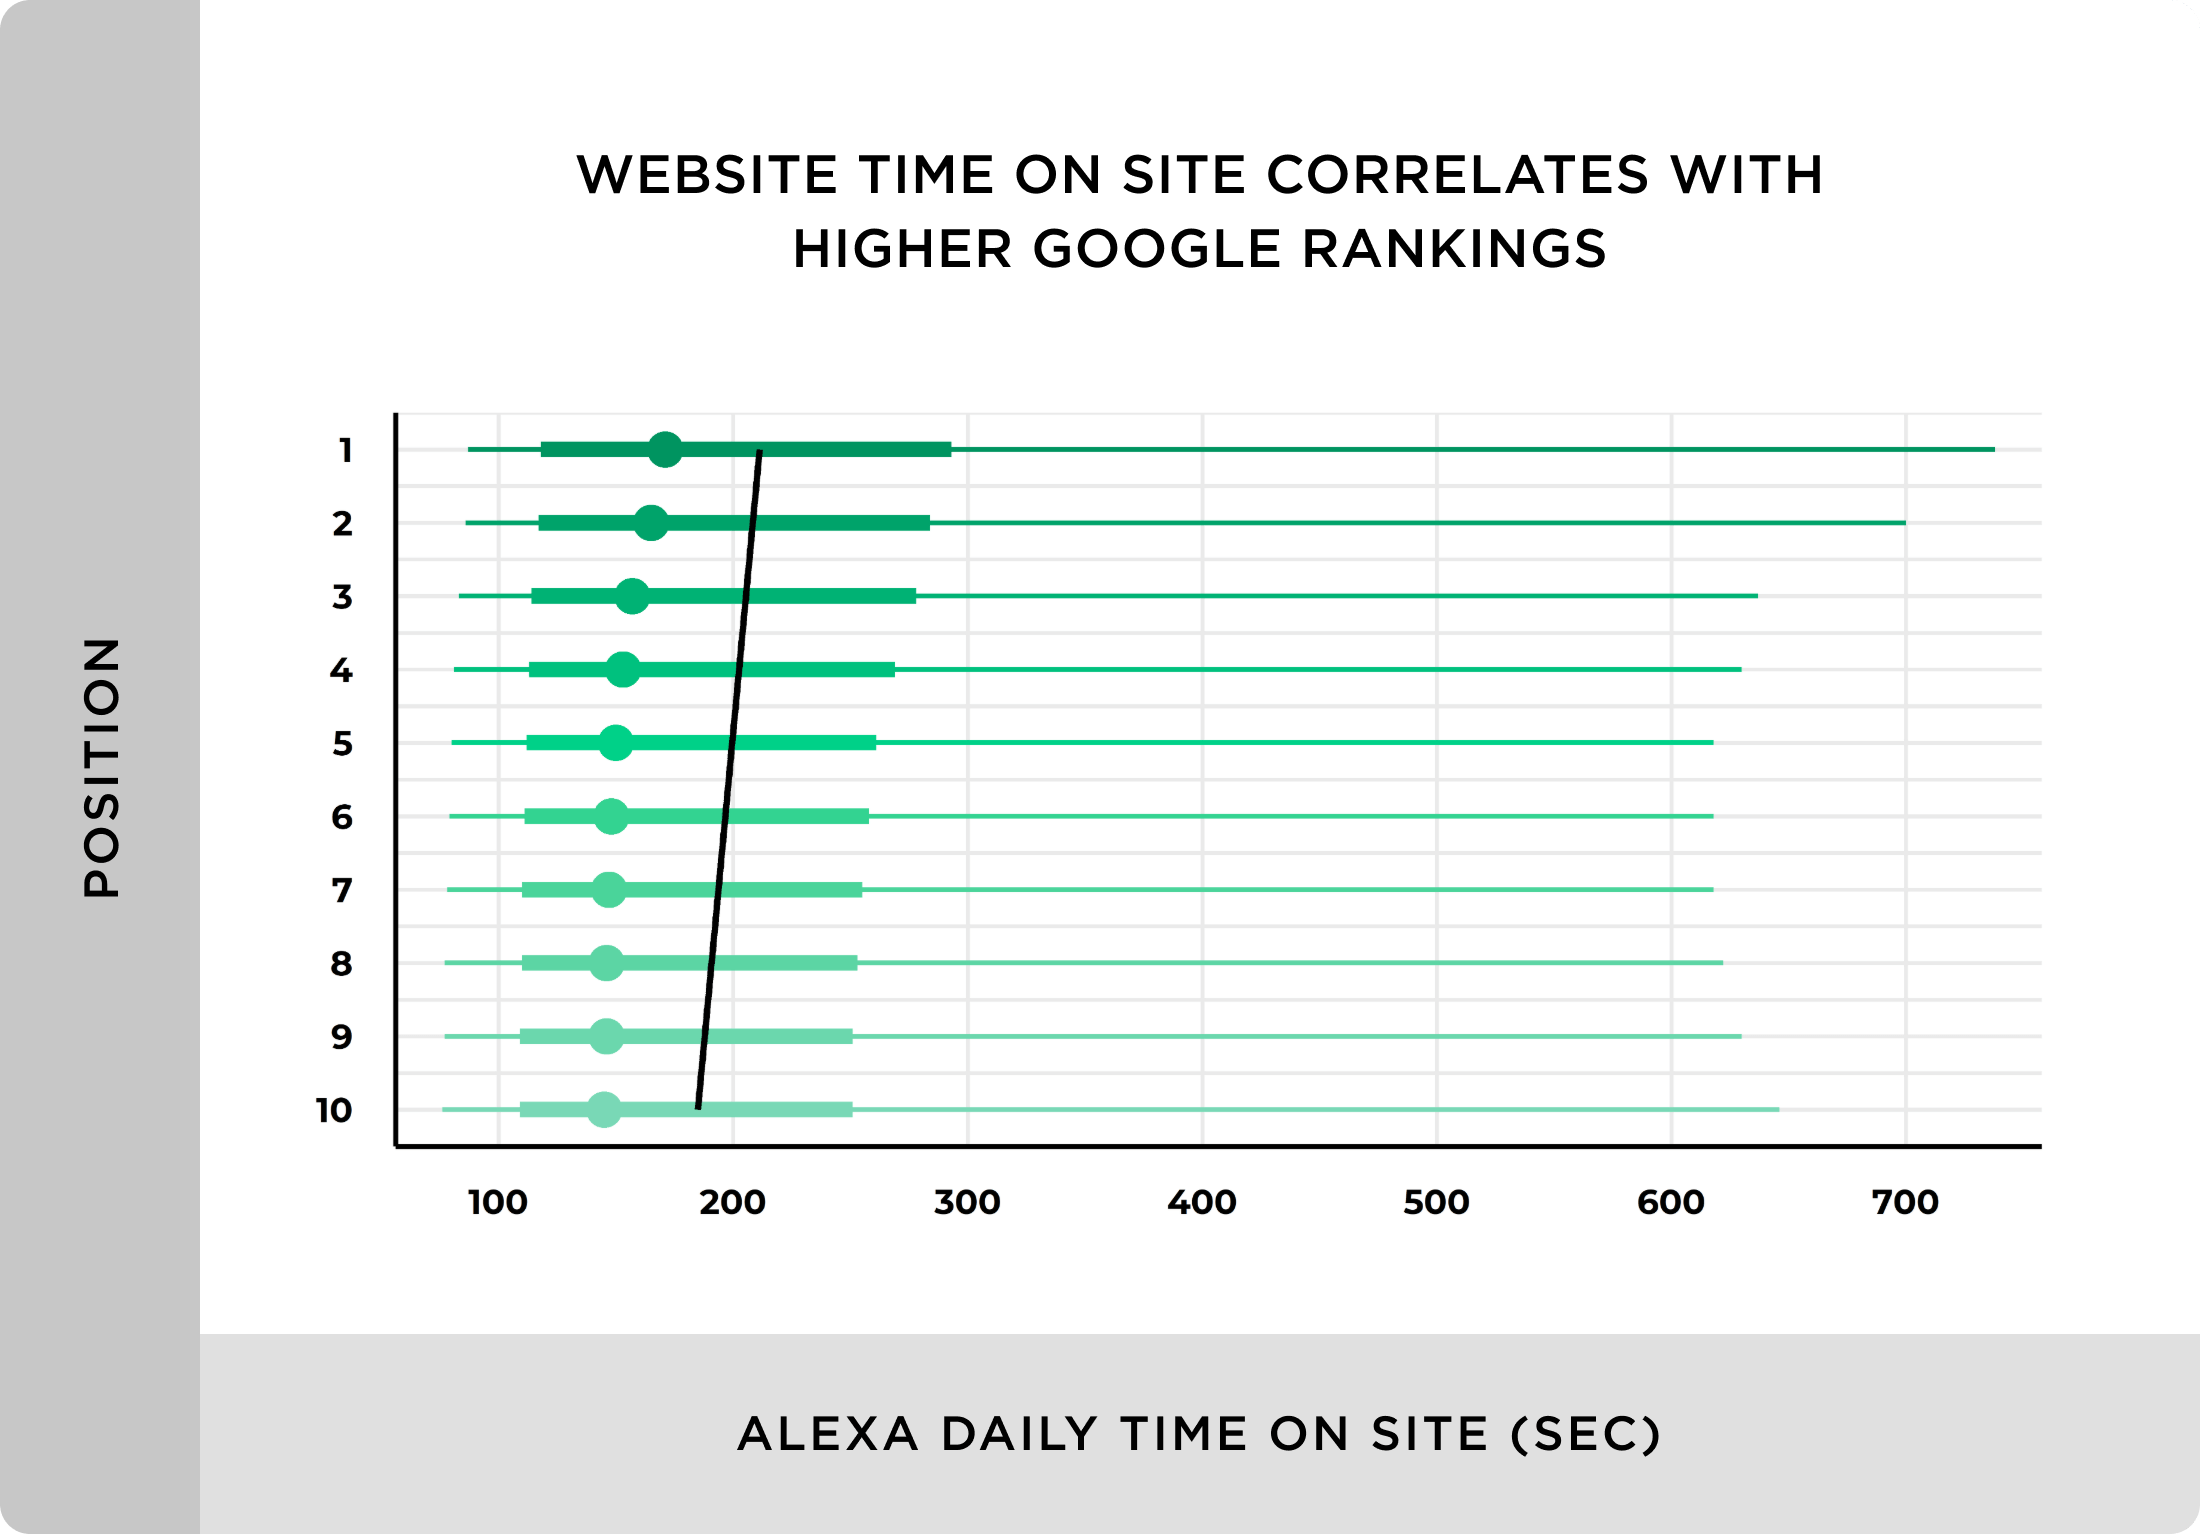 Website time on site correlates with higher Google rankings